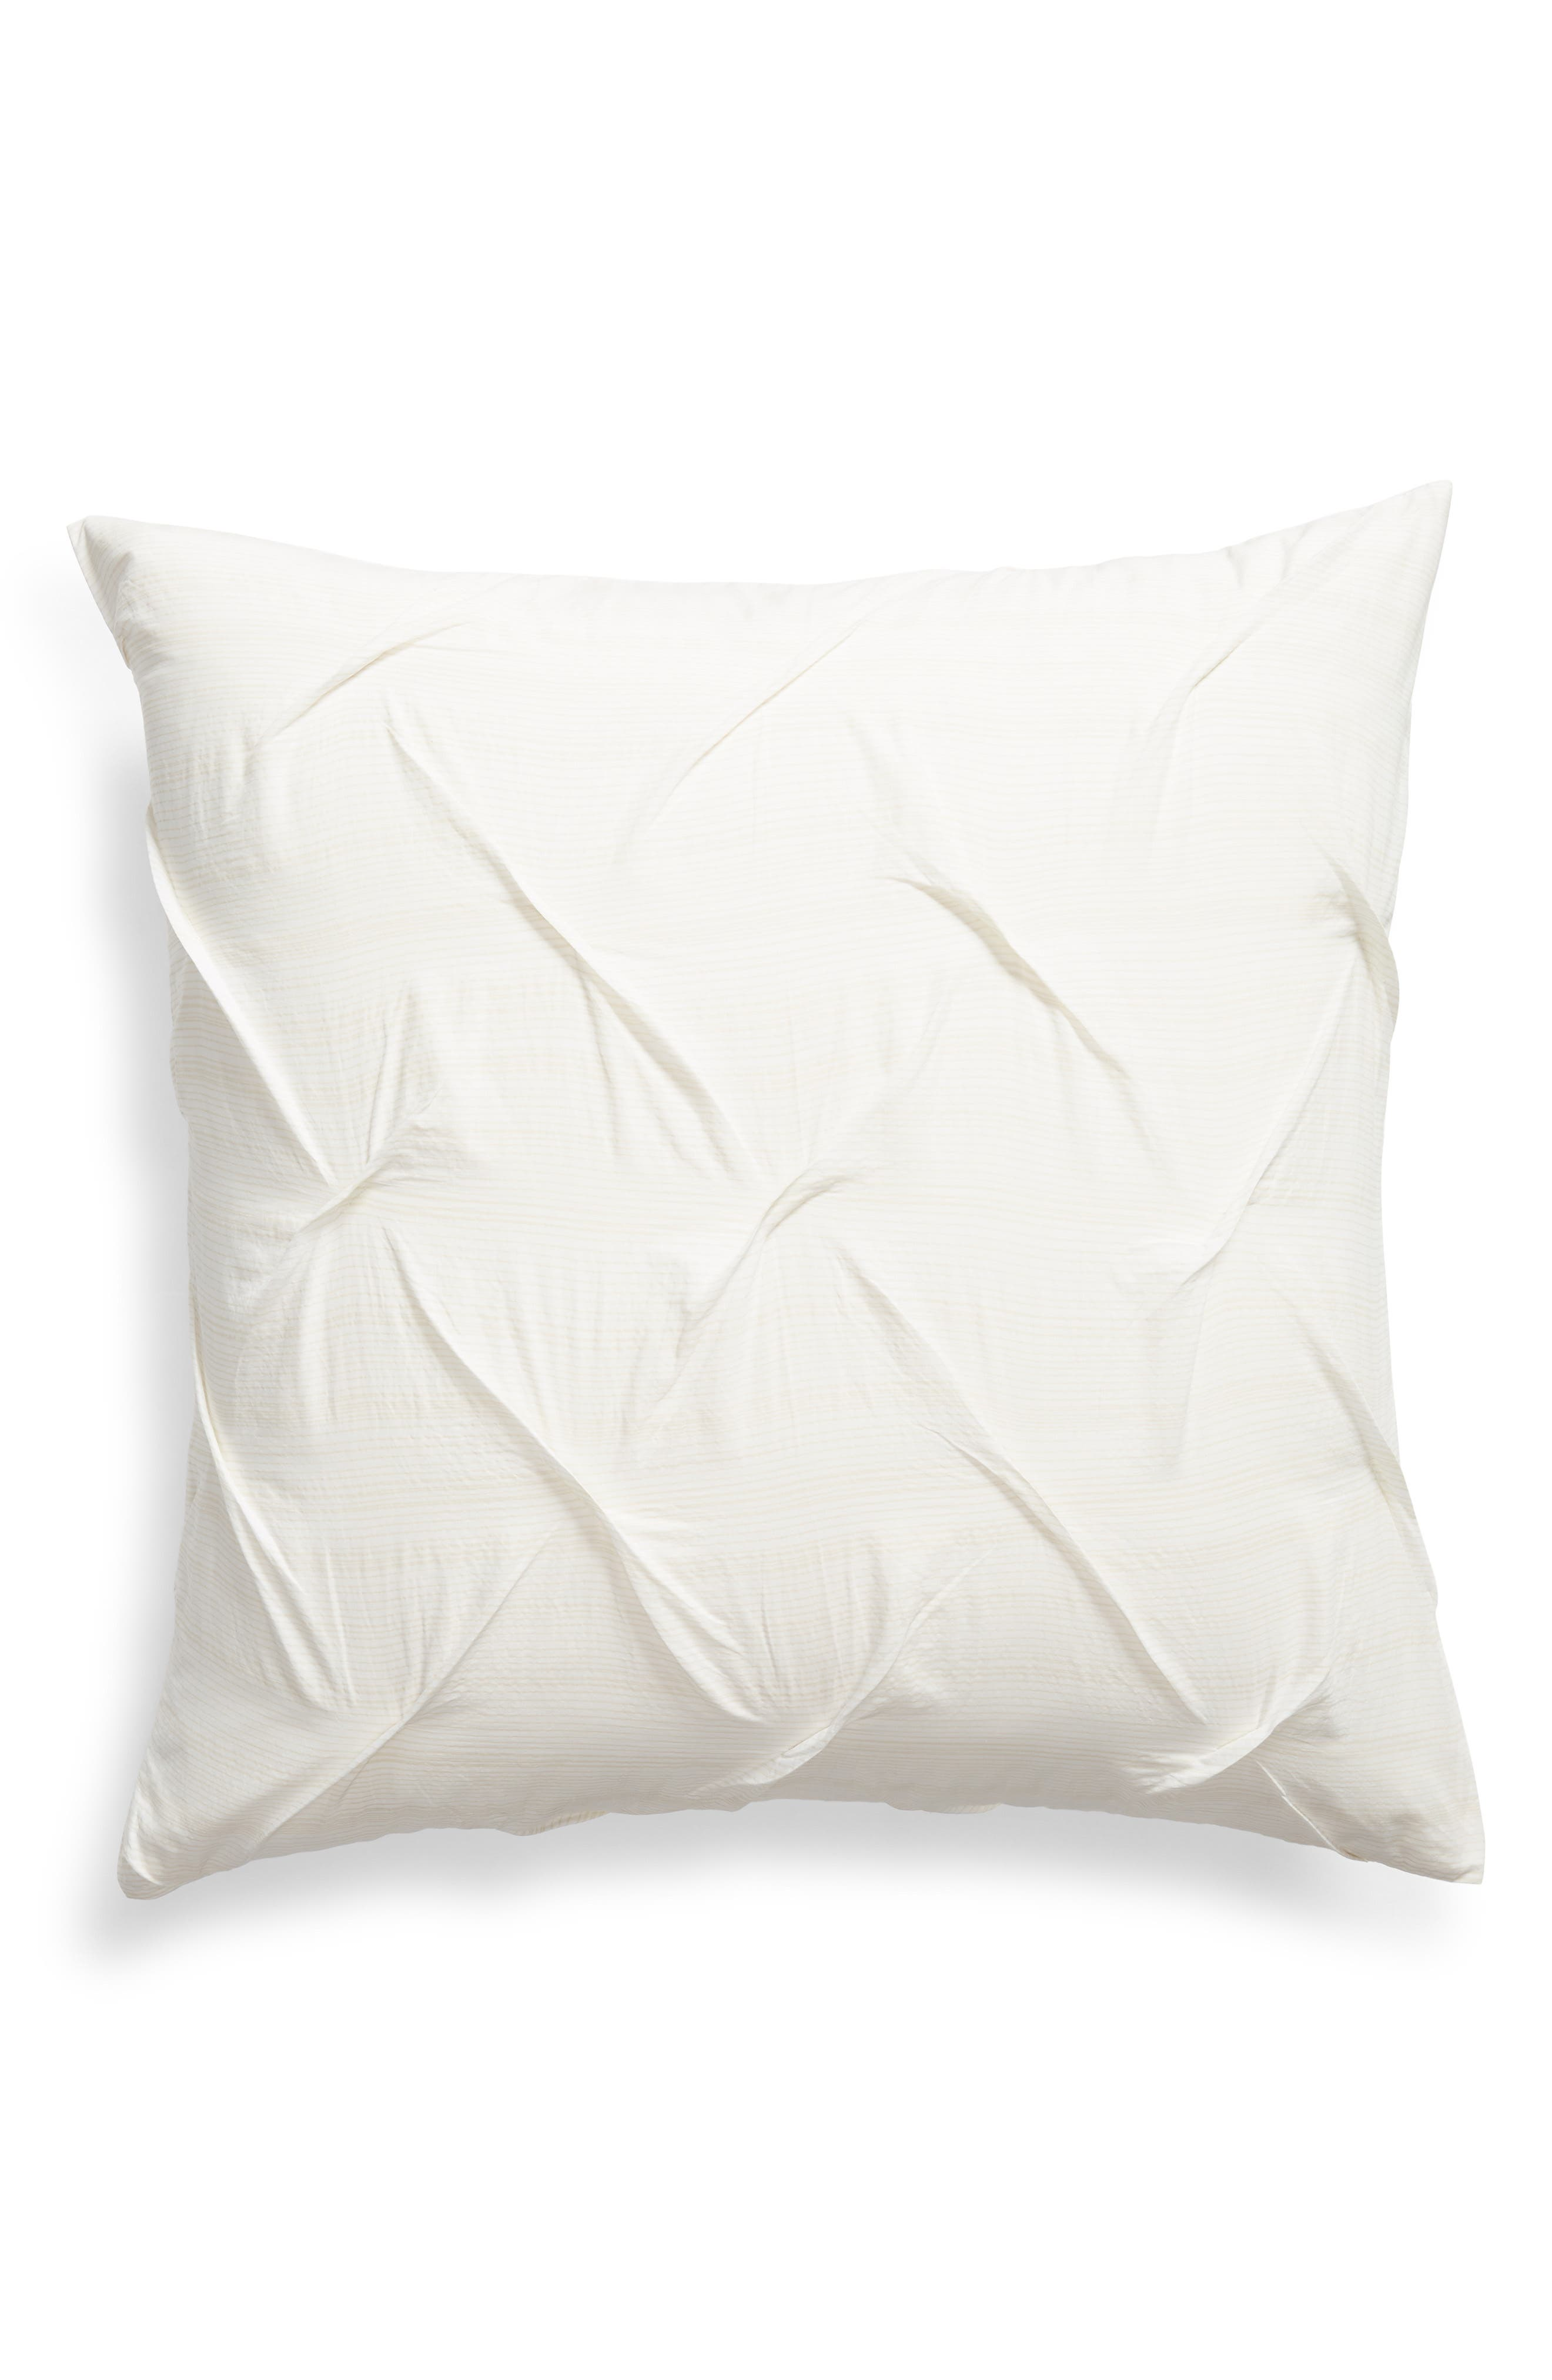 Nordstrom at Home Kate Textured Cotton Sham